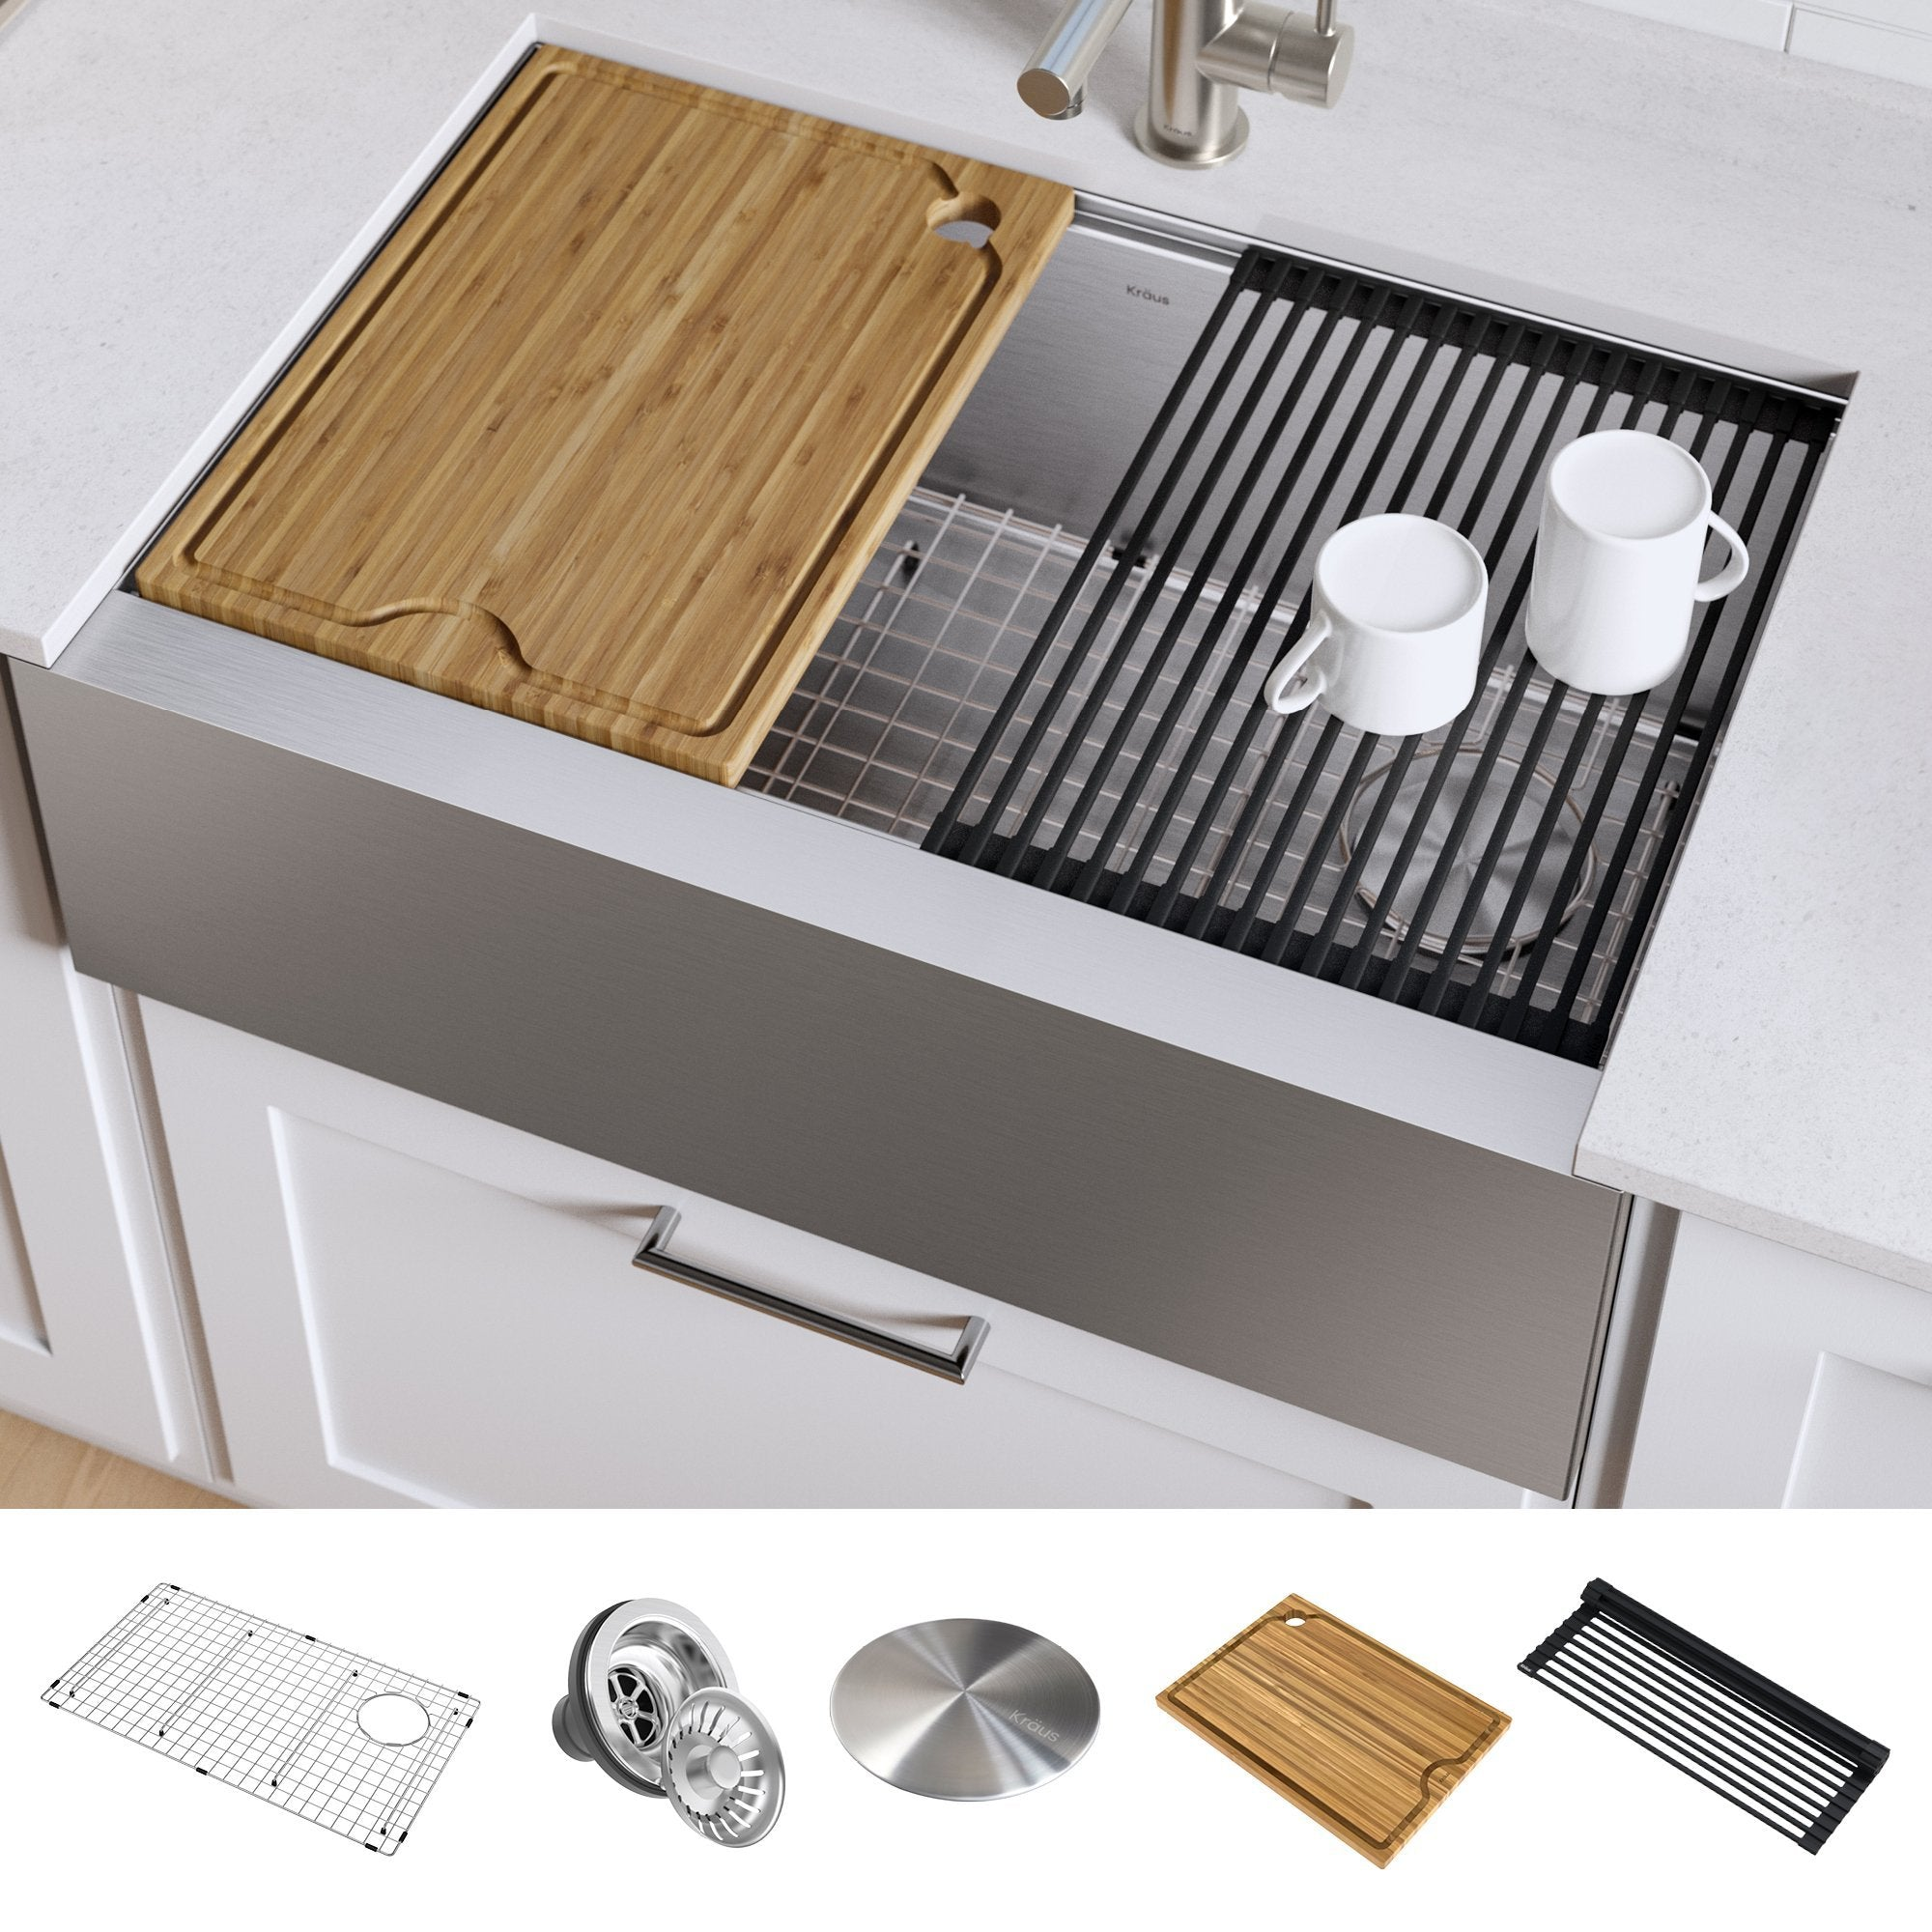 KRAUS Kore™ Workstation 33-inch Farmhouse Flat Apron Front 16 Gauge Single Bowl Stainless Steel Kitchen Sink with Accessories-Kitchen Sinks-DirectSinks-Fast and free shipping